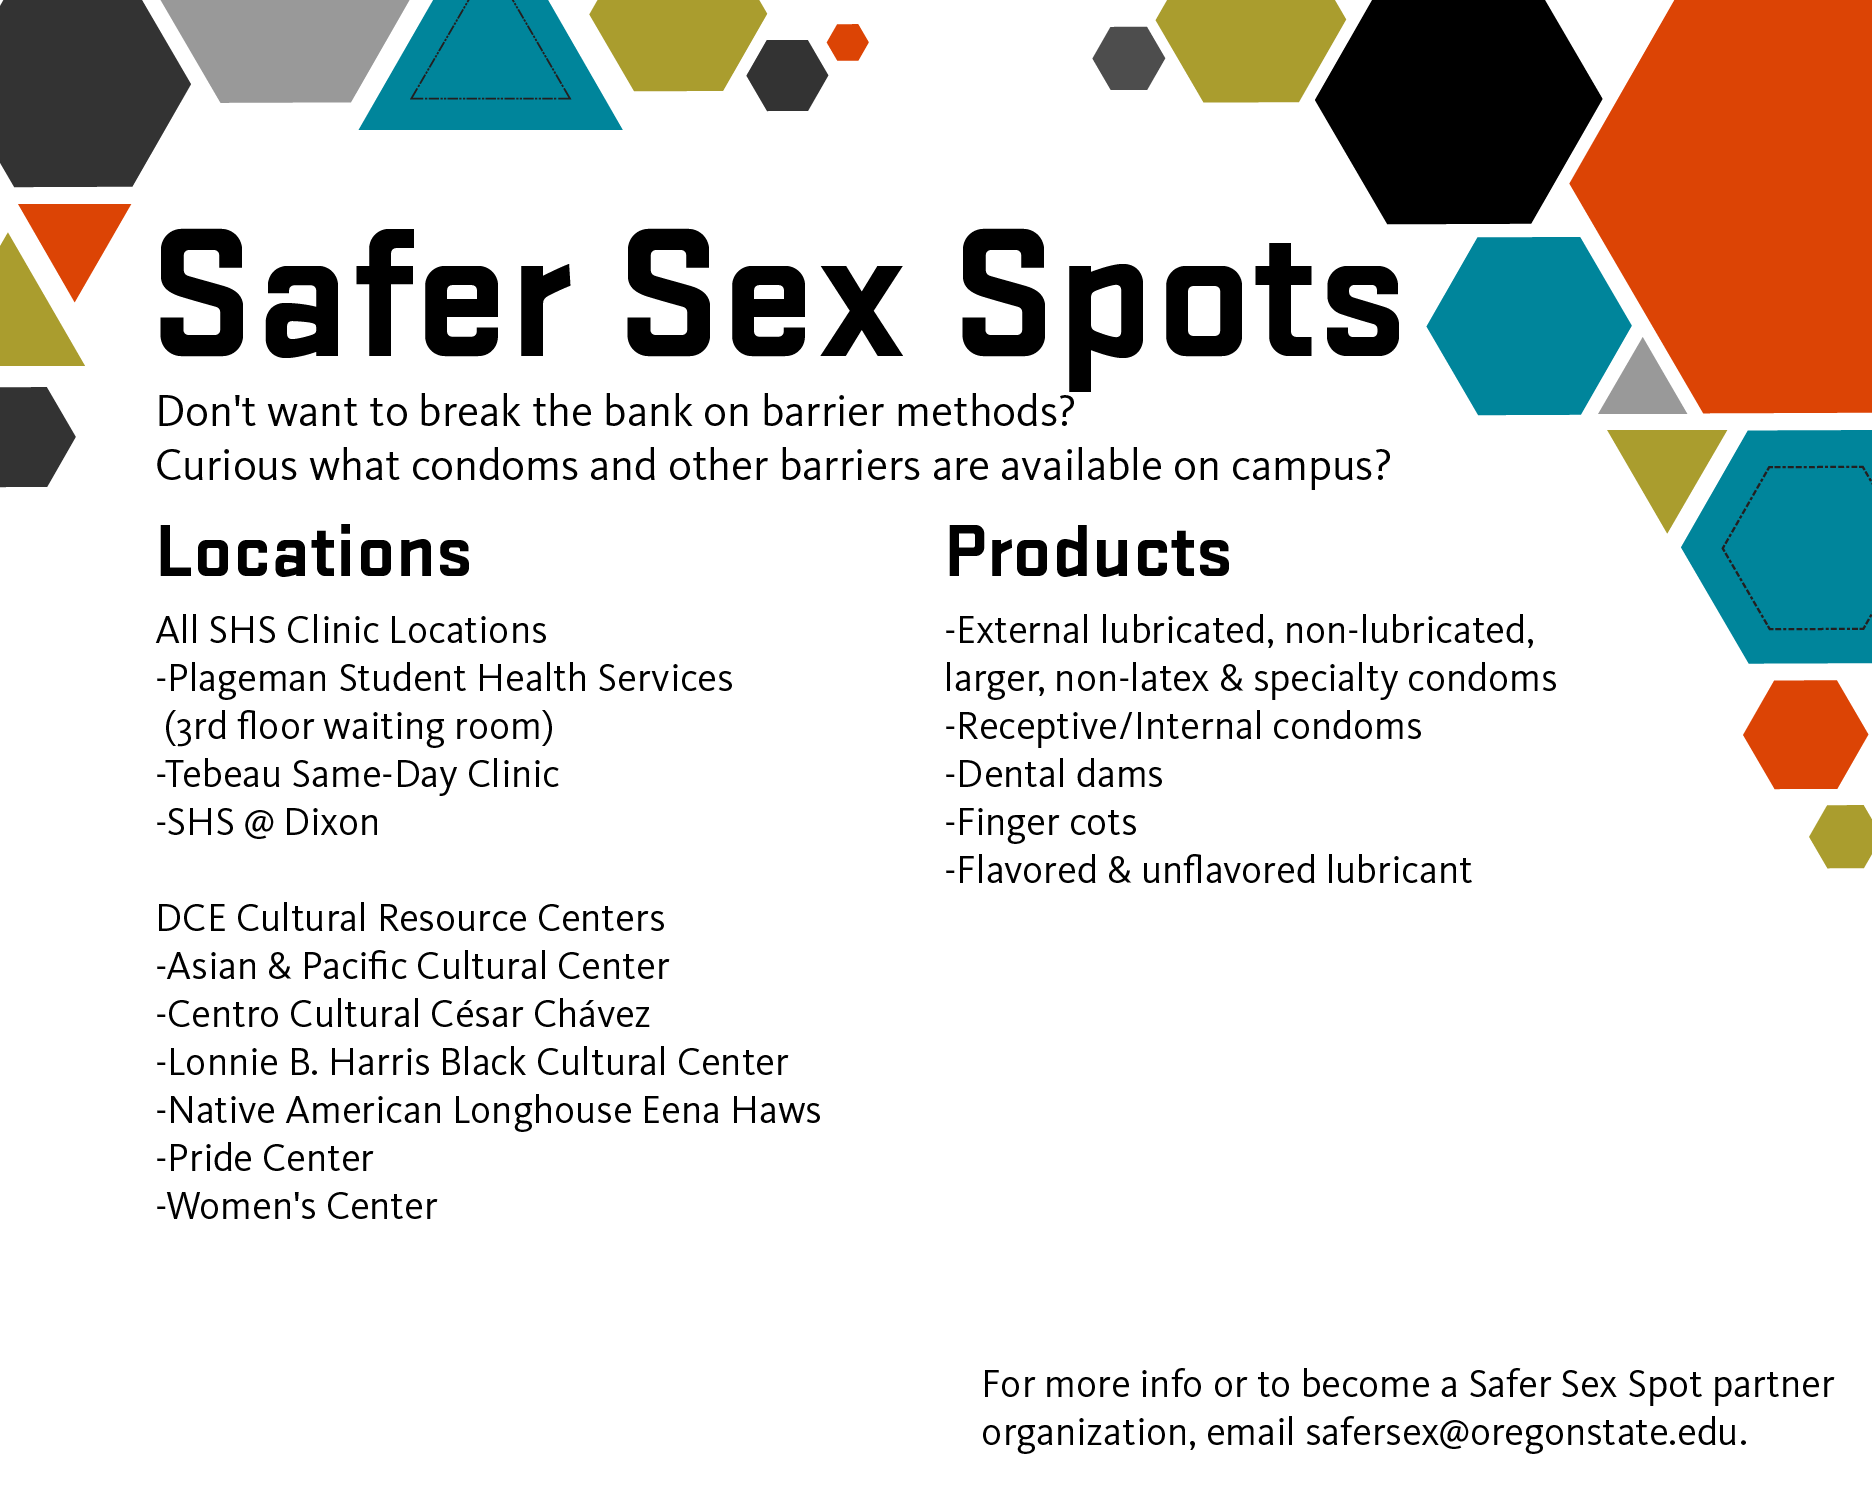 Look for safer sex spots on campus!